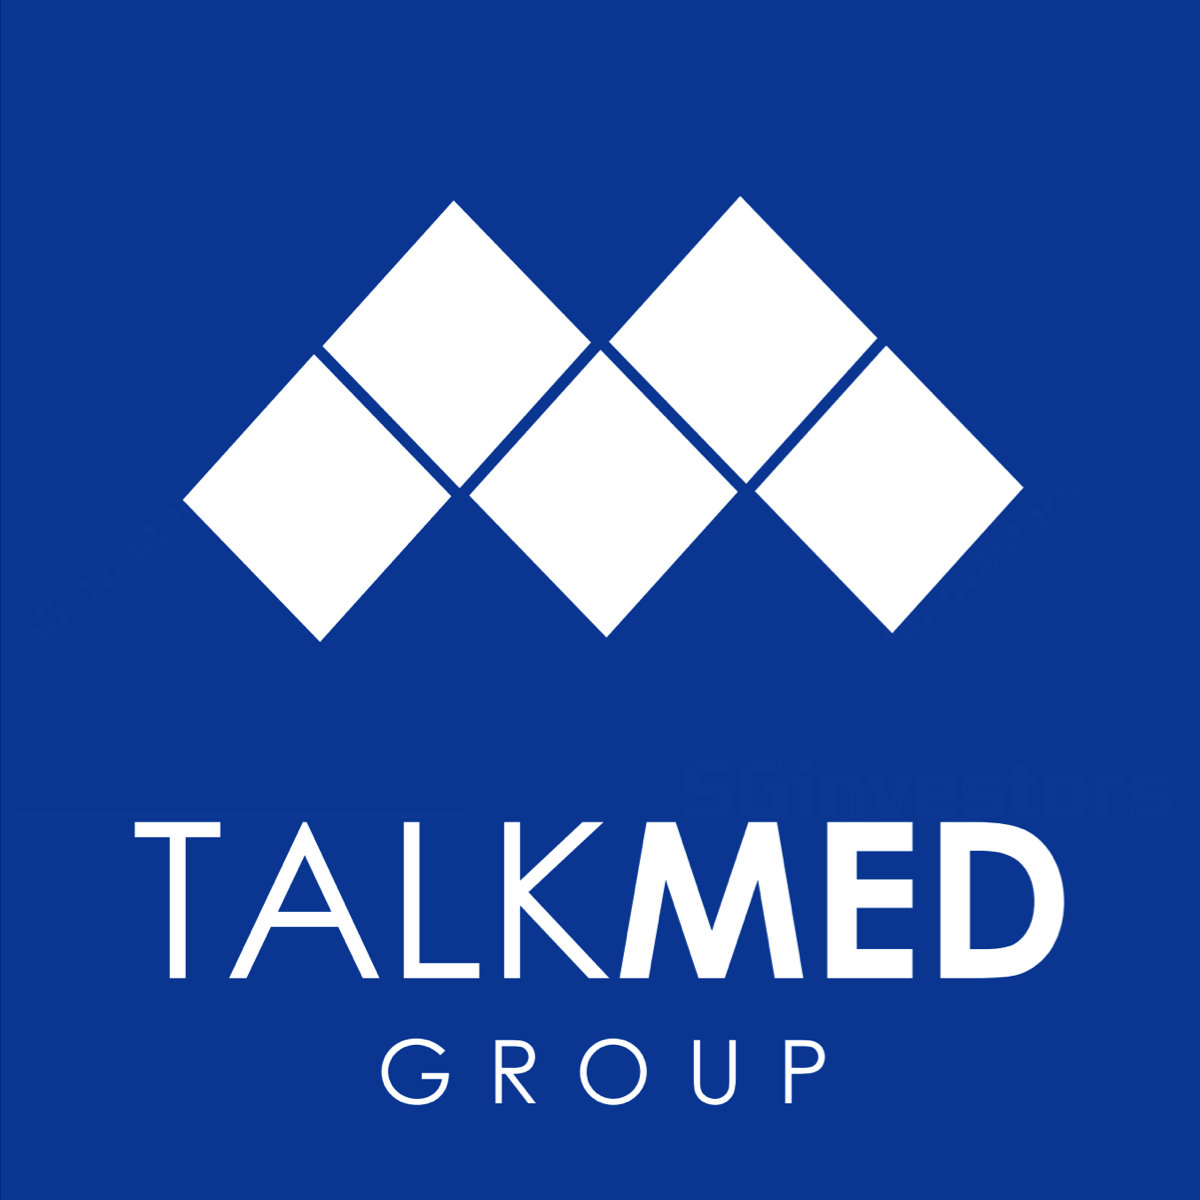 Talkmed Group Ltd - CIMB Research 2018-01-07: Cashing On Healthcare Brand Name